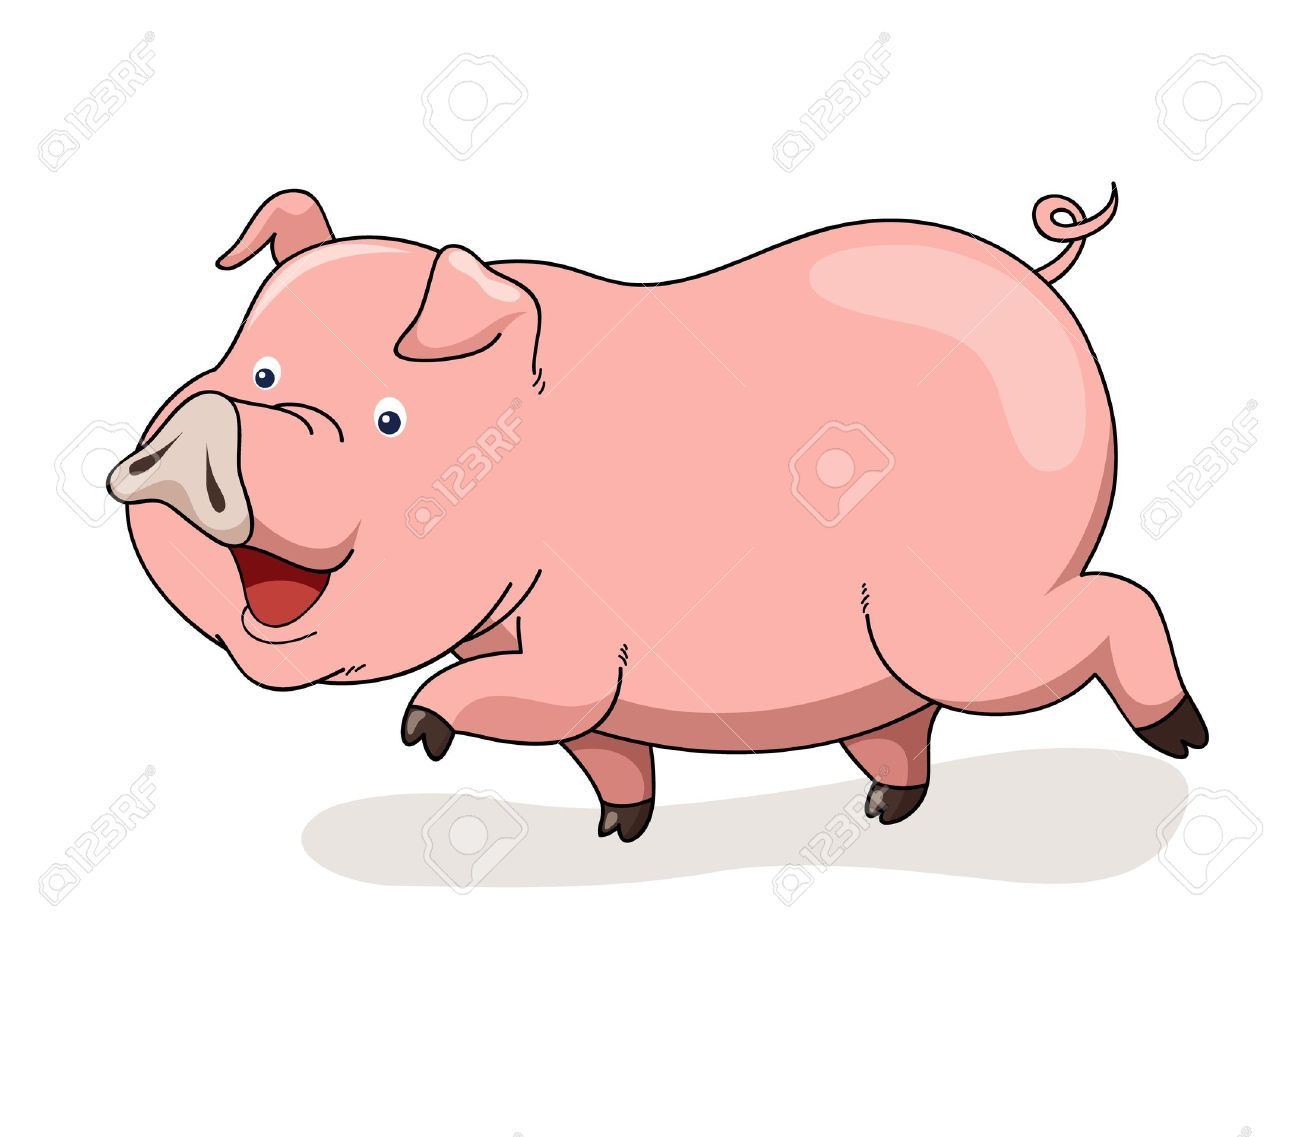 cartoon pig vector royalty free cliparts vectors and stock rh 123rf com pig factory youtube pig factor plan